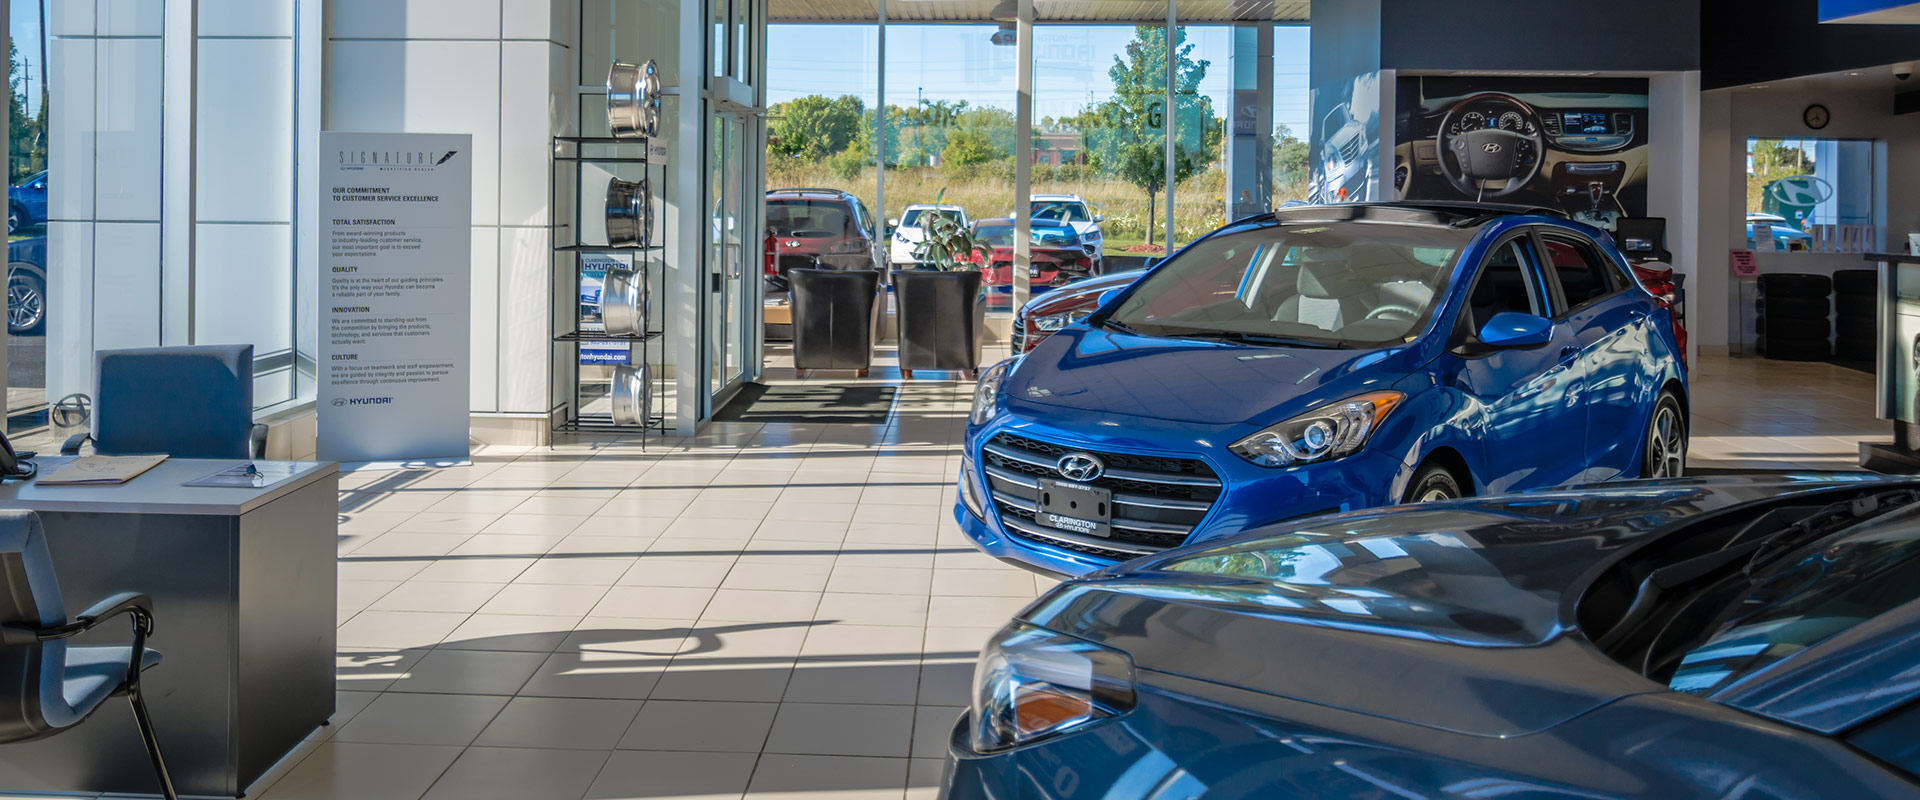 Clarington Hyundai Showroom 2